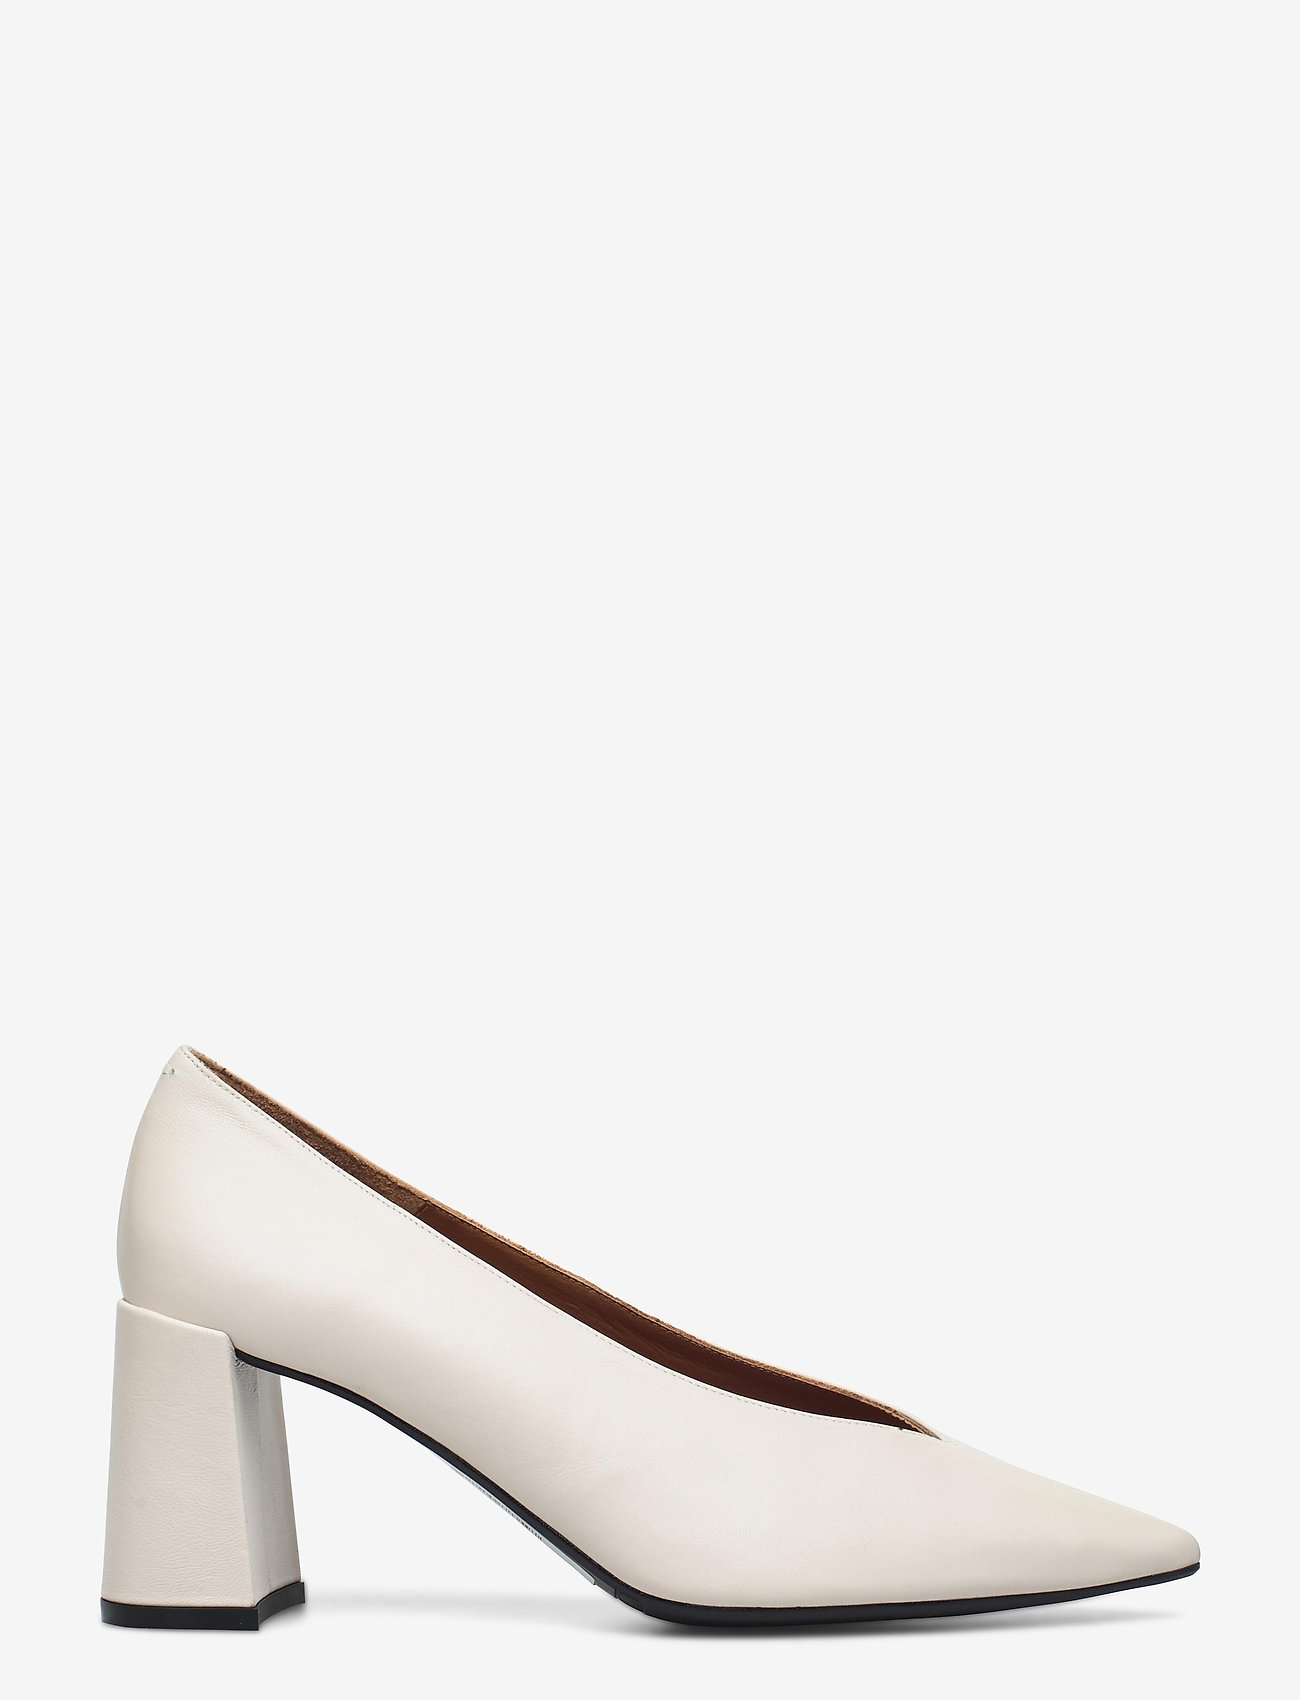 Billi Bi - Pumps 5061 - classic pumps - white 2582 nappa 73 - 1